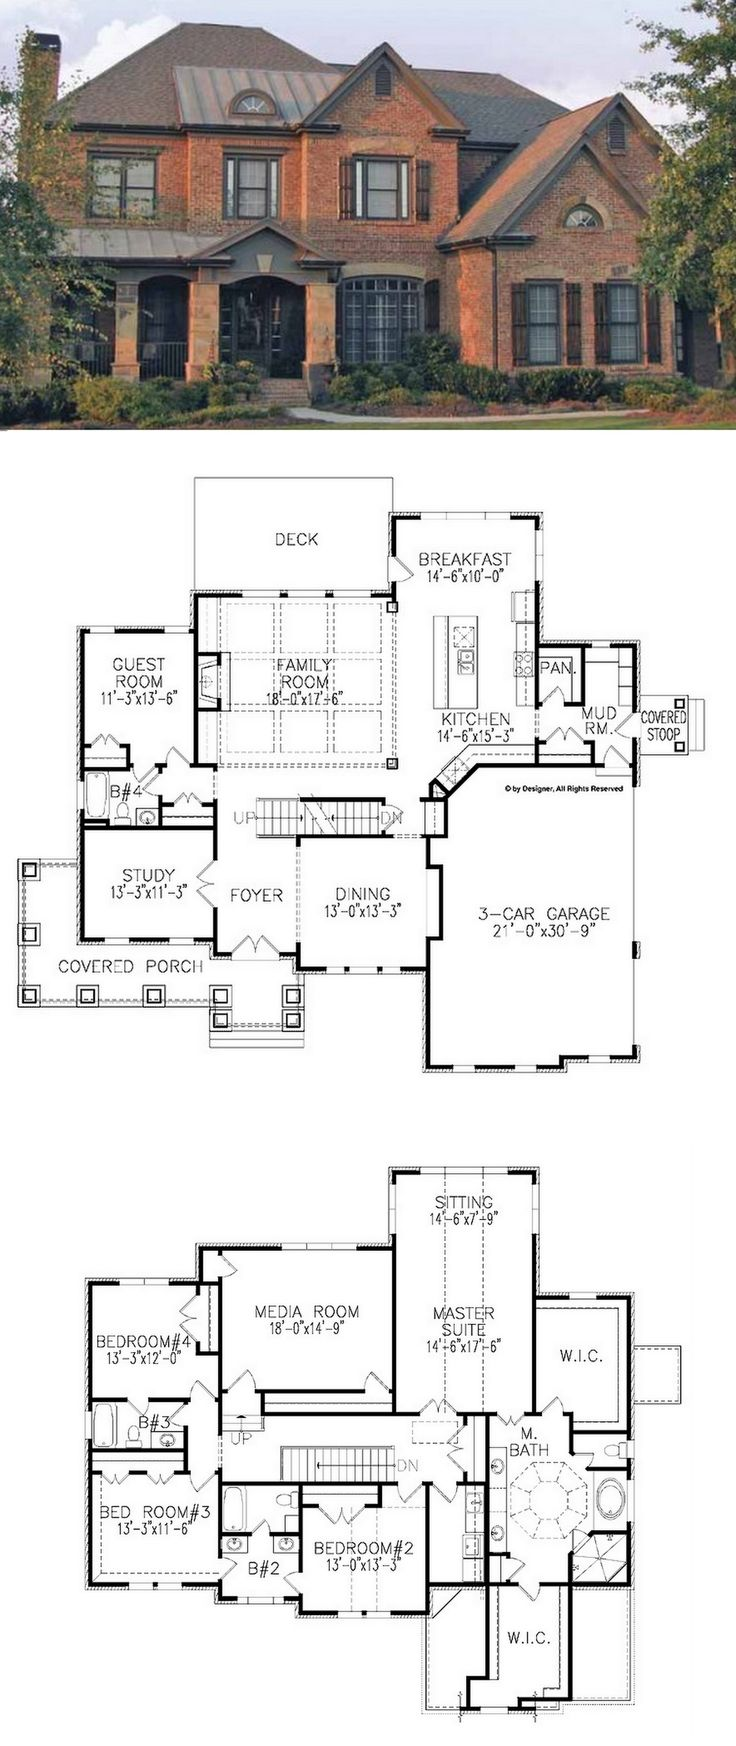 Best 25 5 bedroom house plans ideas only on pinterest 4 bedroom house plans beautiful house - Plan of house with bed rooms ...